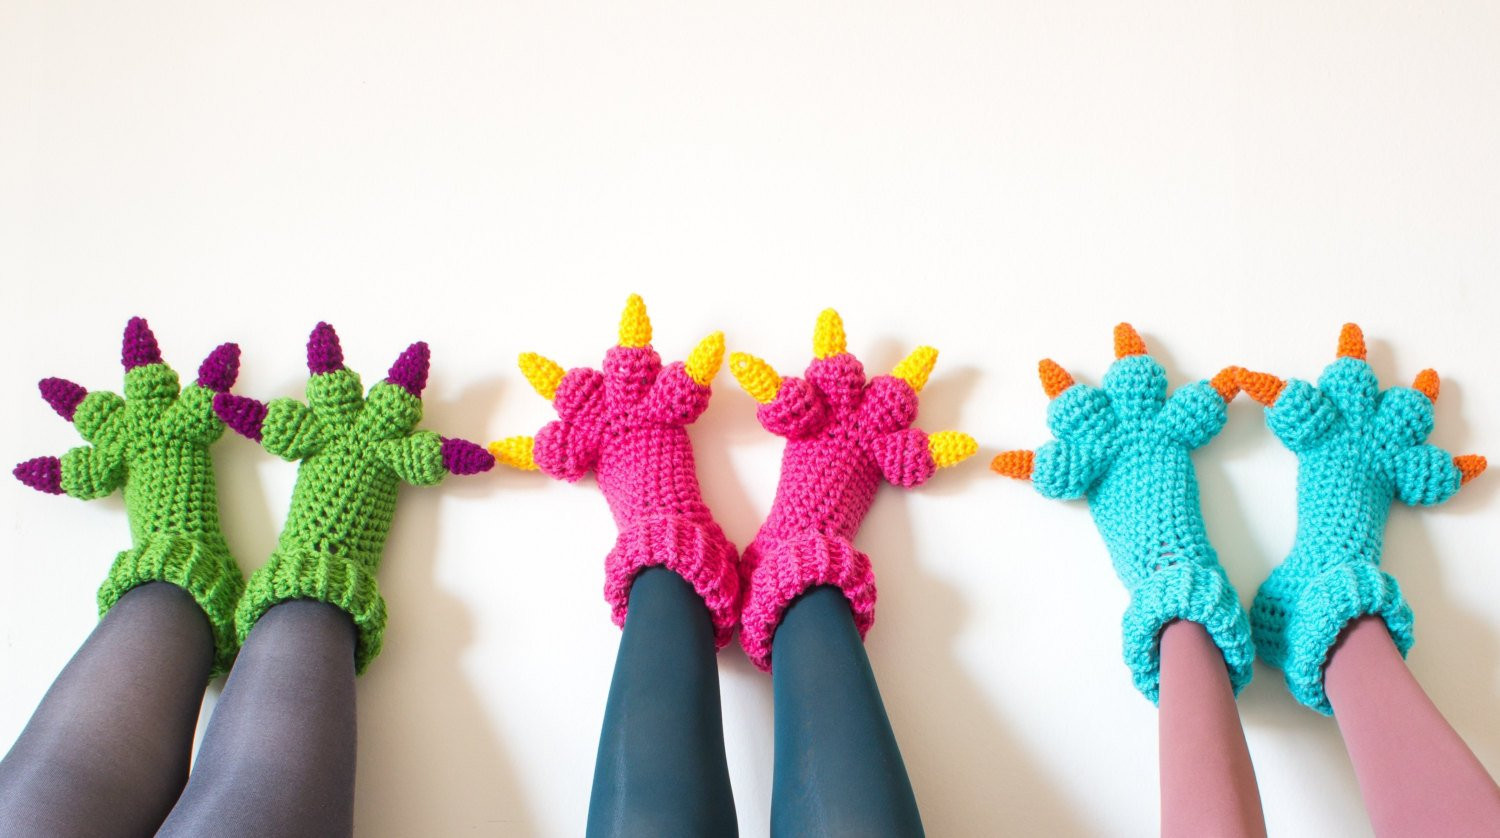 Best Of Chandeliers & Pendant Lights Crochet Monster Slippers Of Awesome Flamingo Slippers Crochet Monster Slippers Crochet Monster Slippers